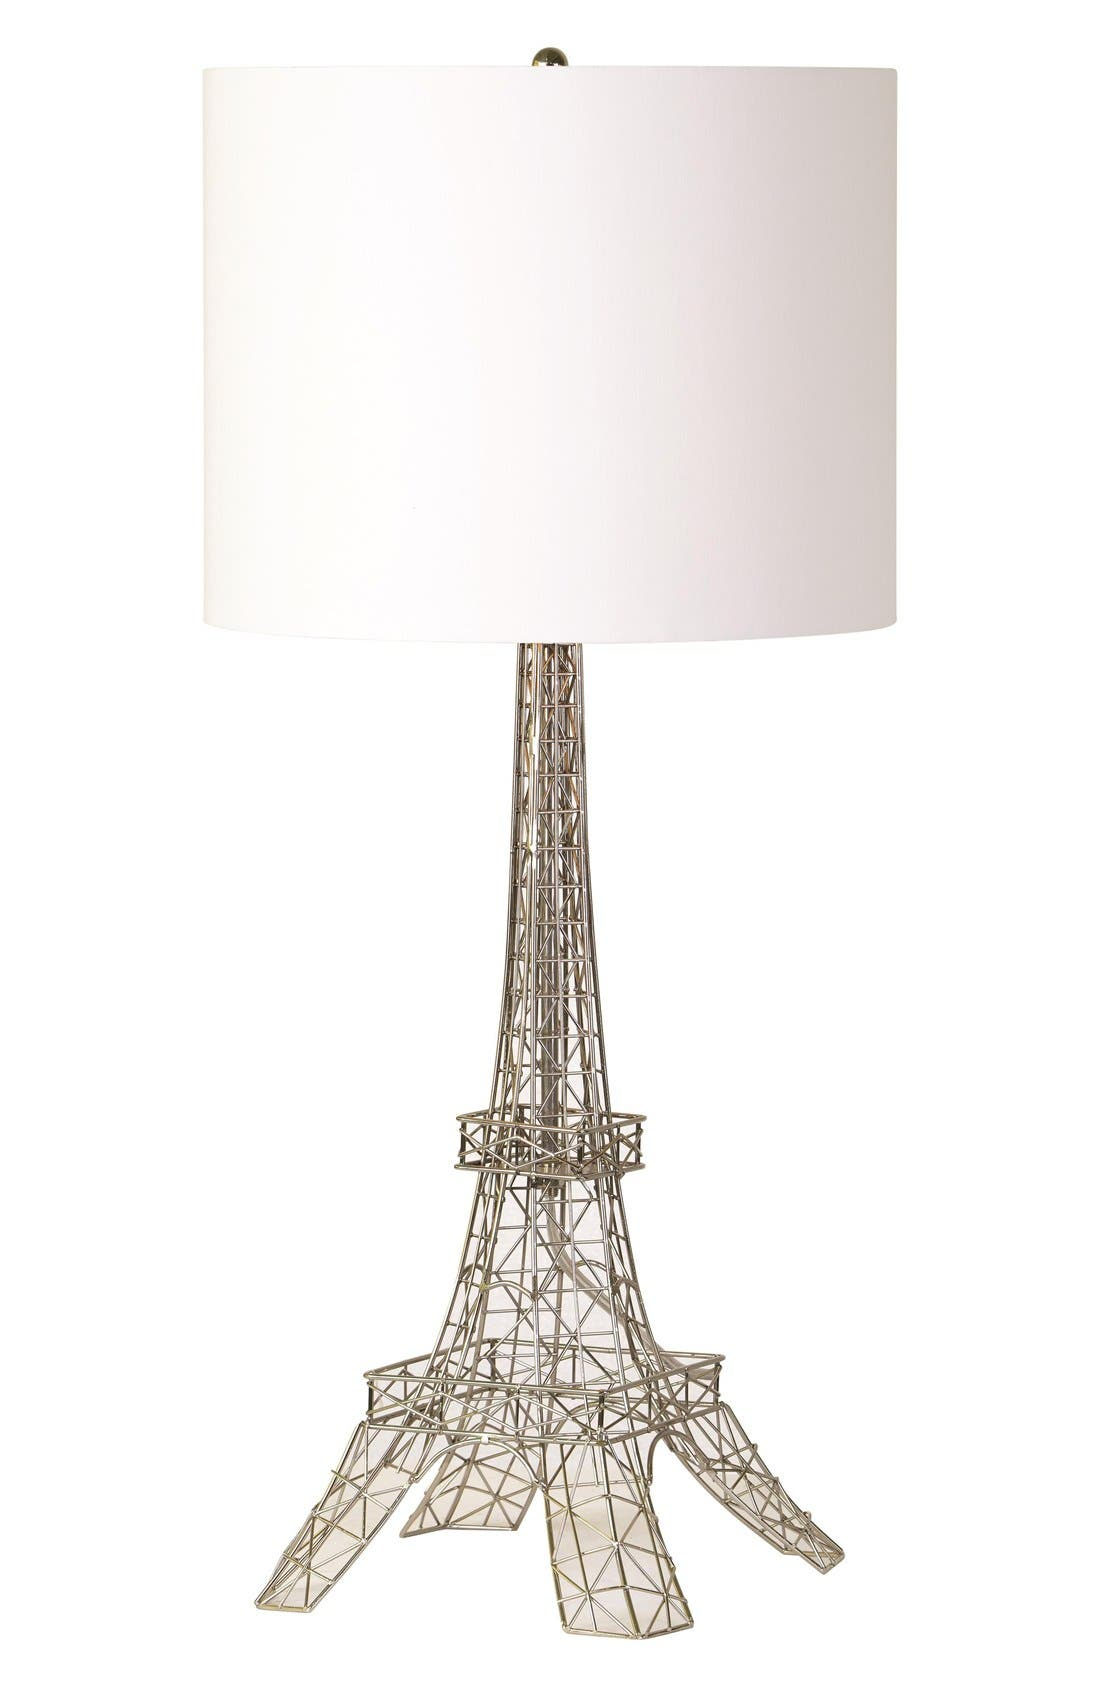 Main Image - Renwil 'Gustave' Table Lamp